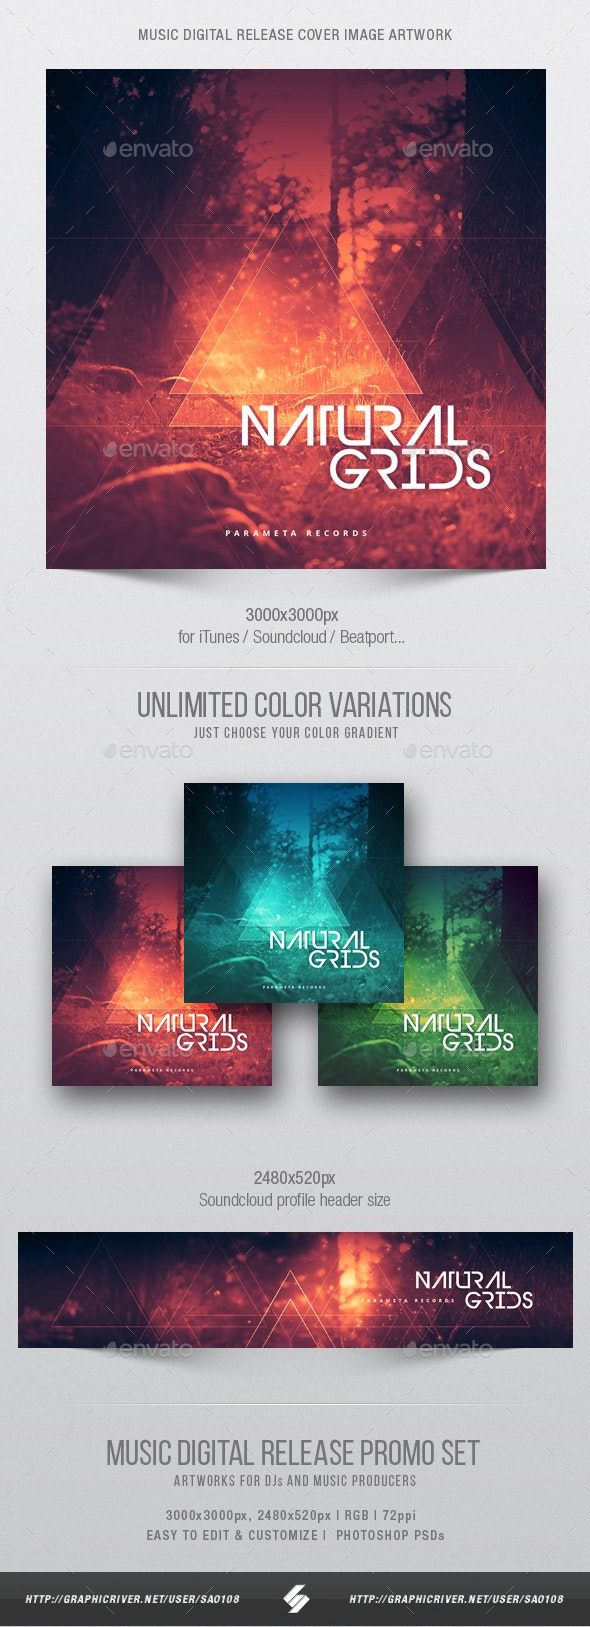 Natural Grids - Music Cover Image Artwork Template - Miscellaneous Social Media